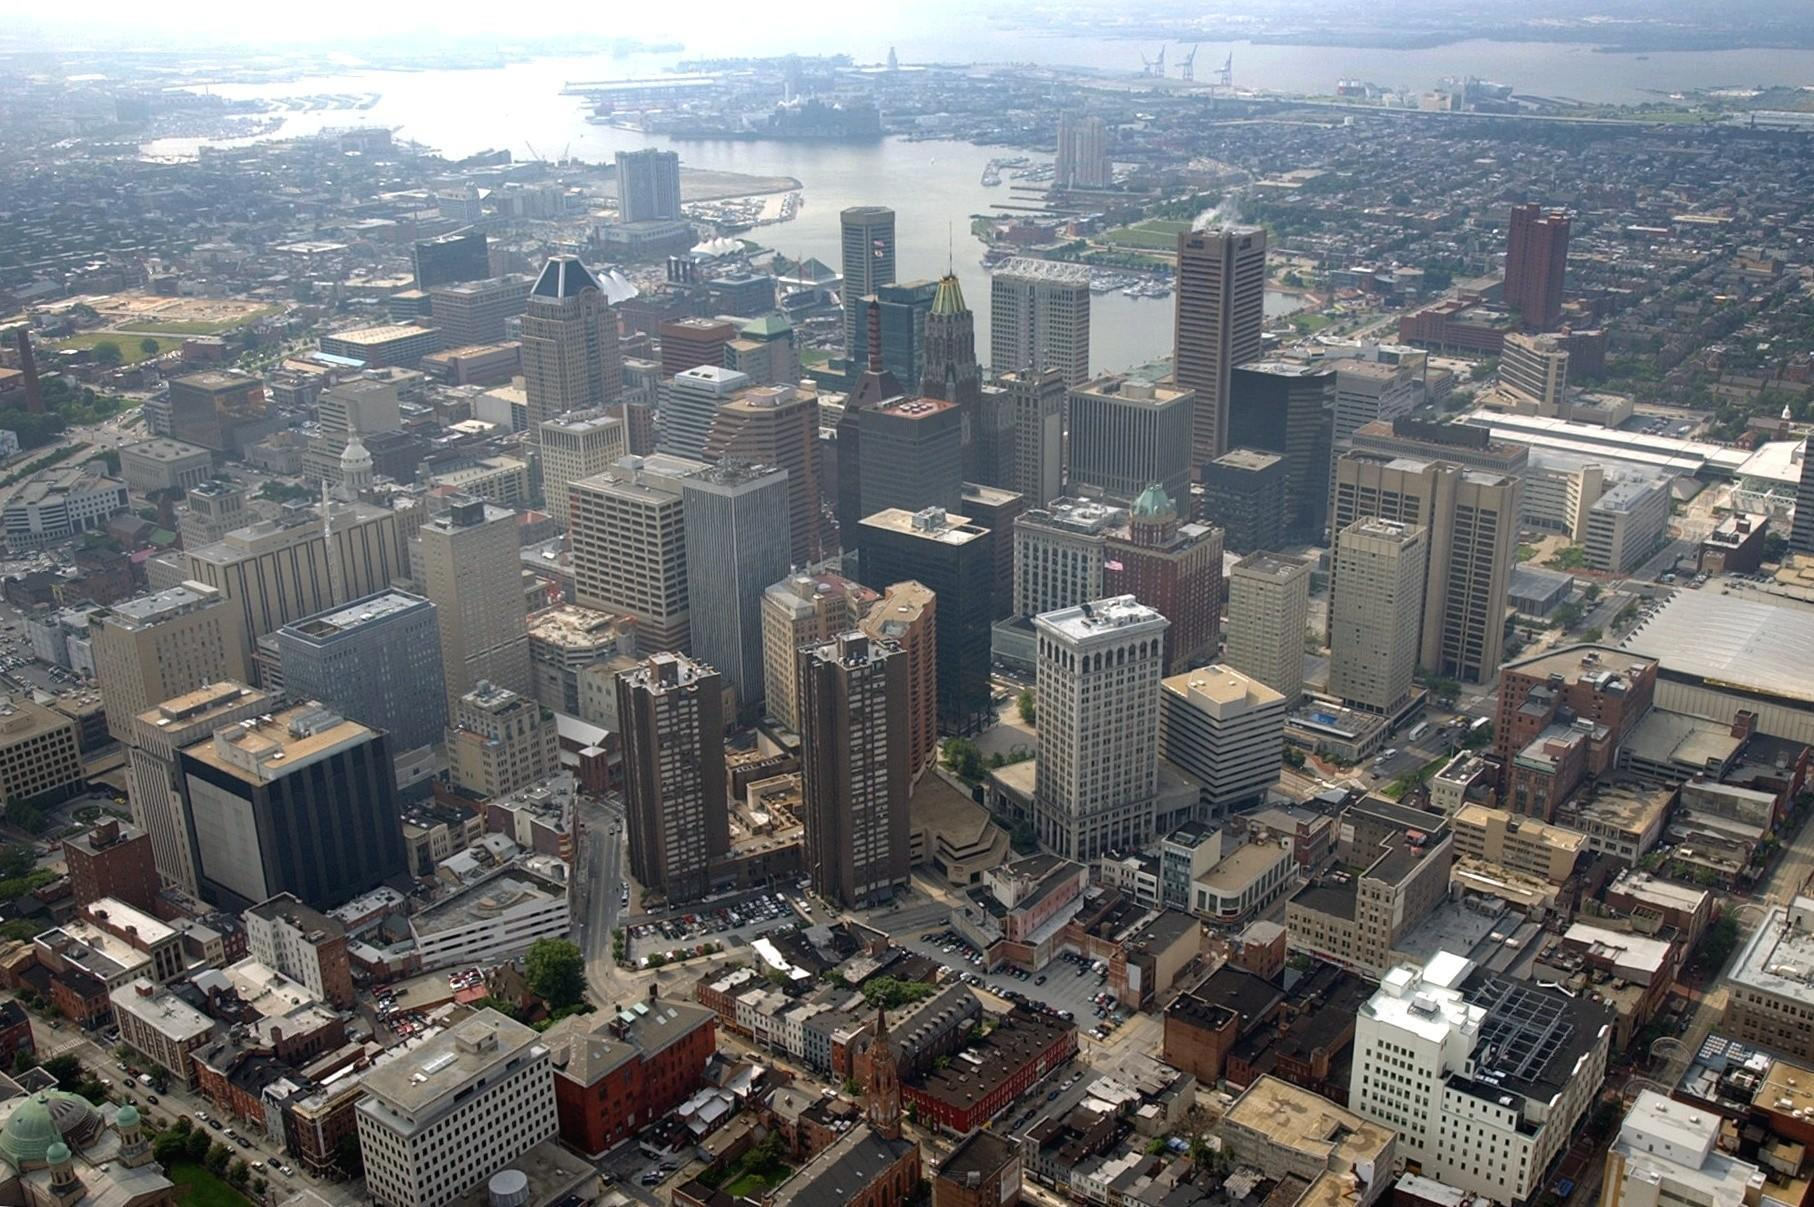 Baltimore is at 10 days without a homicide